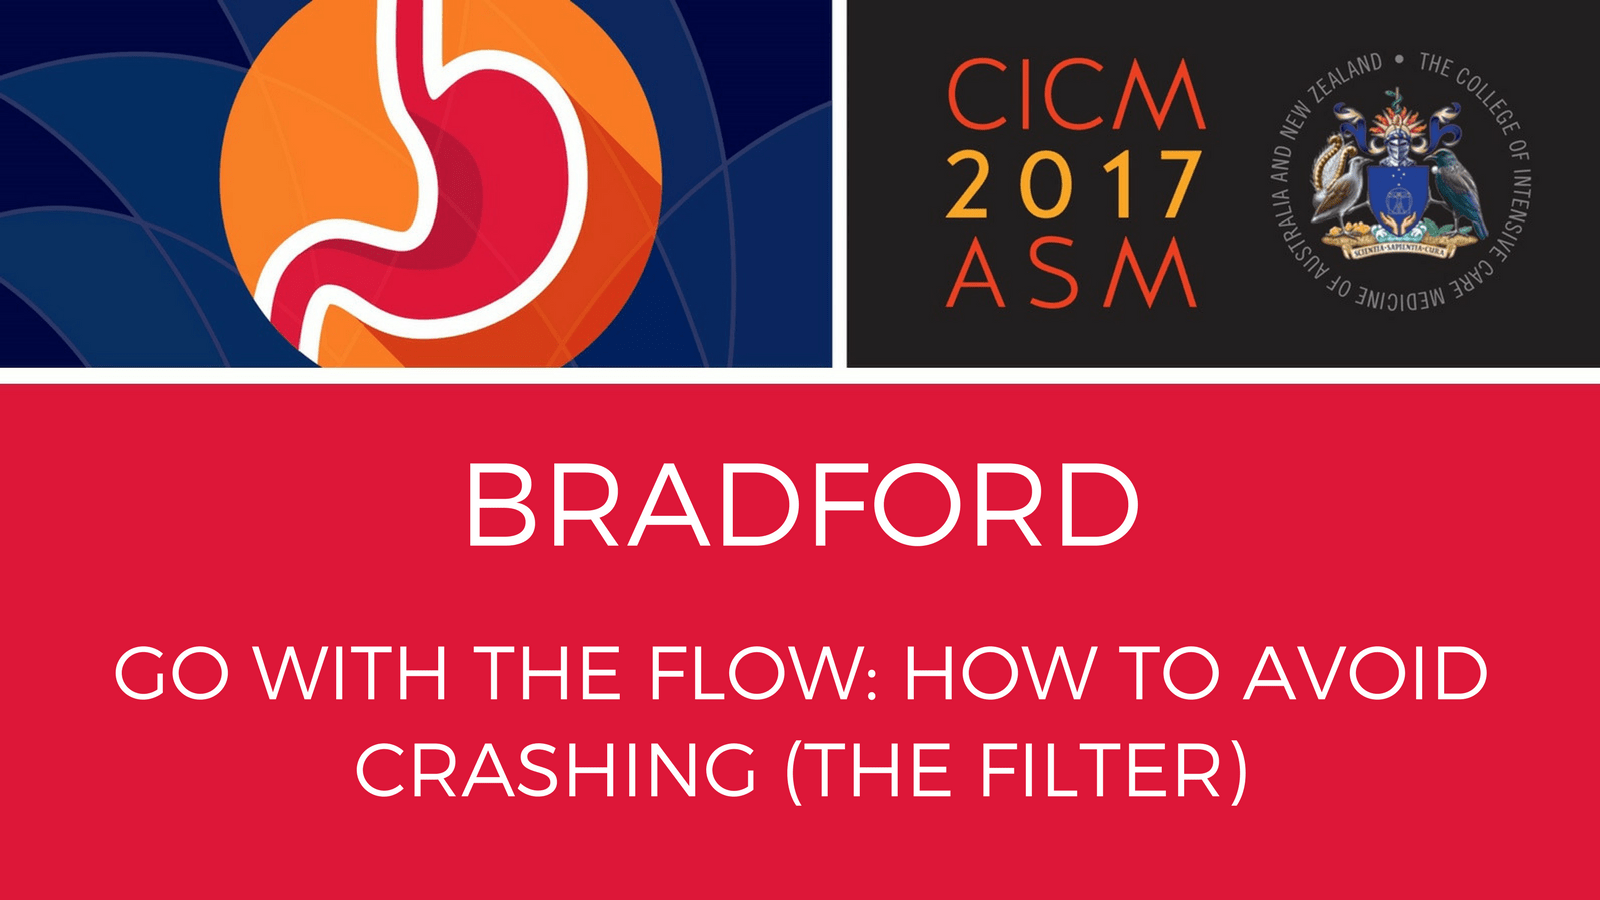 Go with the flow: how to avoid crashing (the filter)